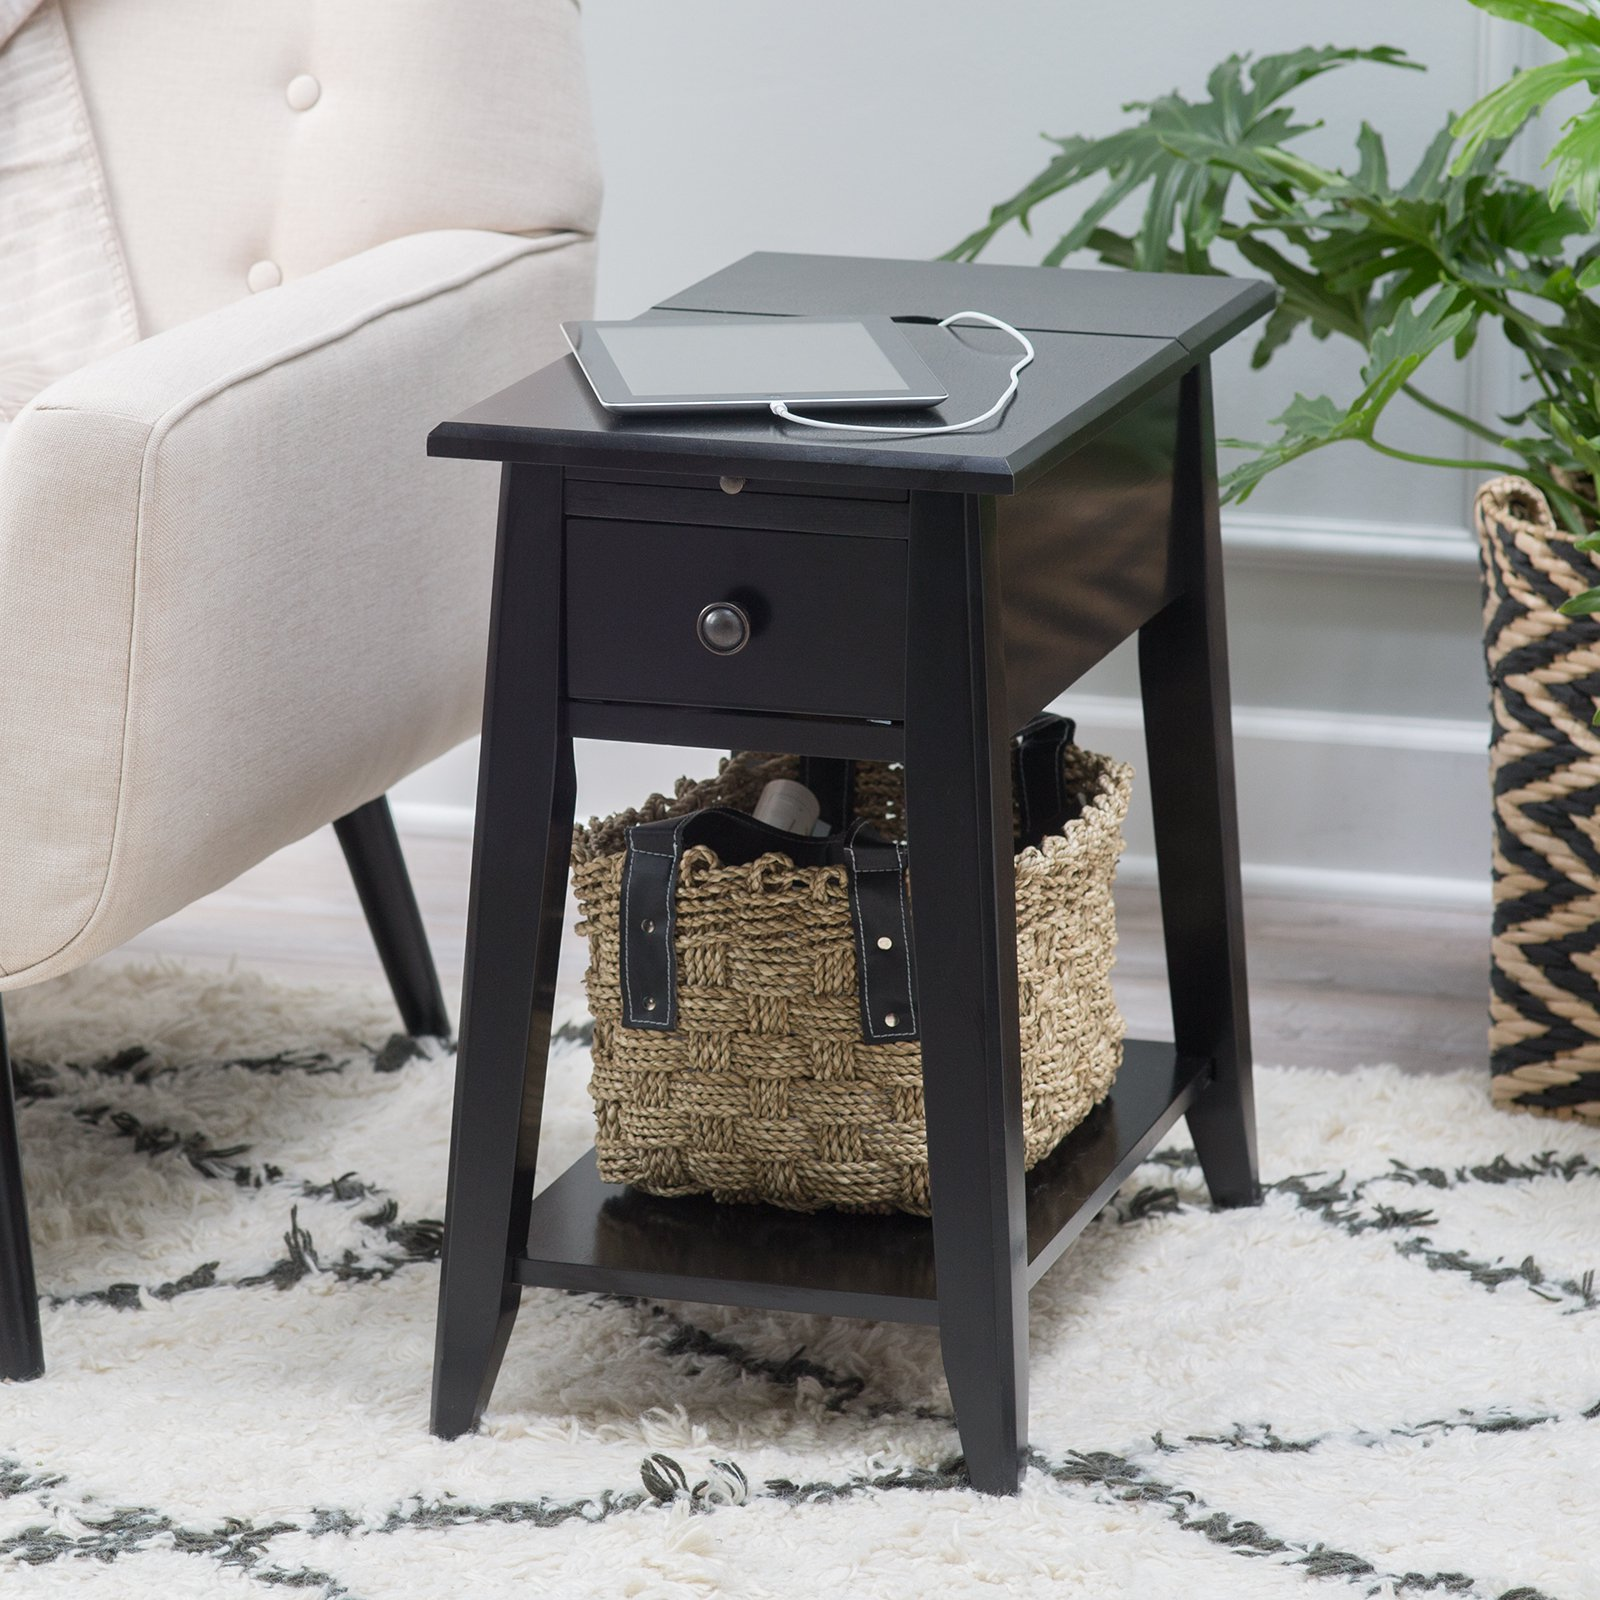 Davis Chairside Table with Power Outlet